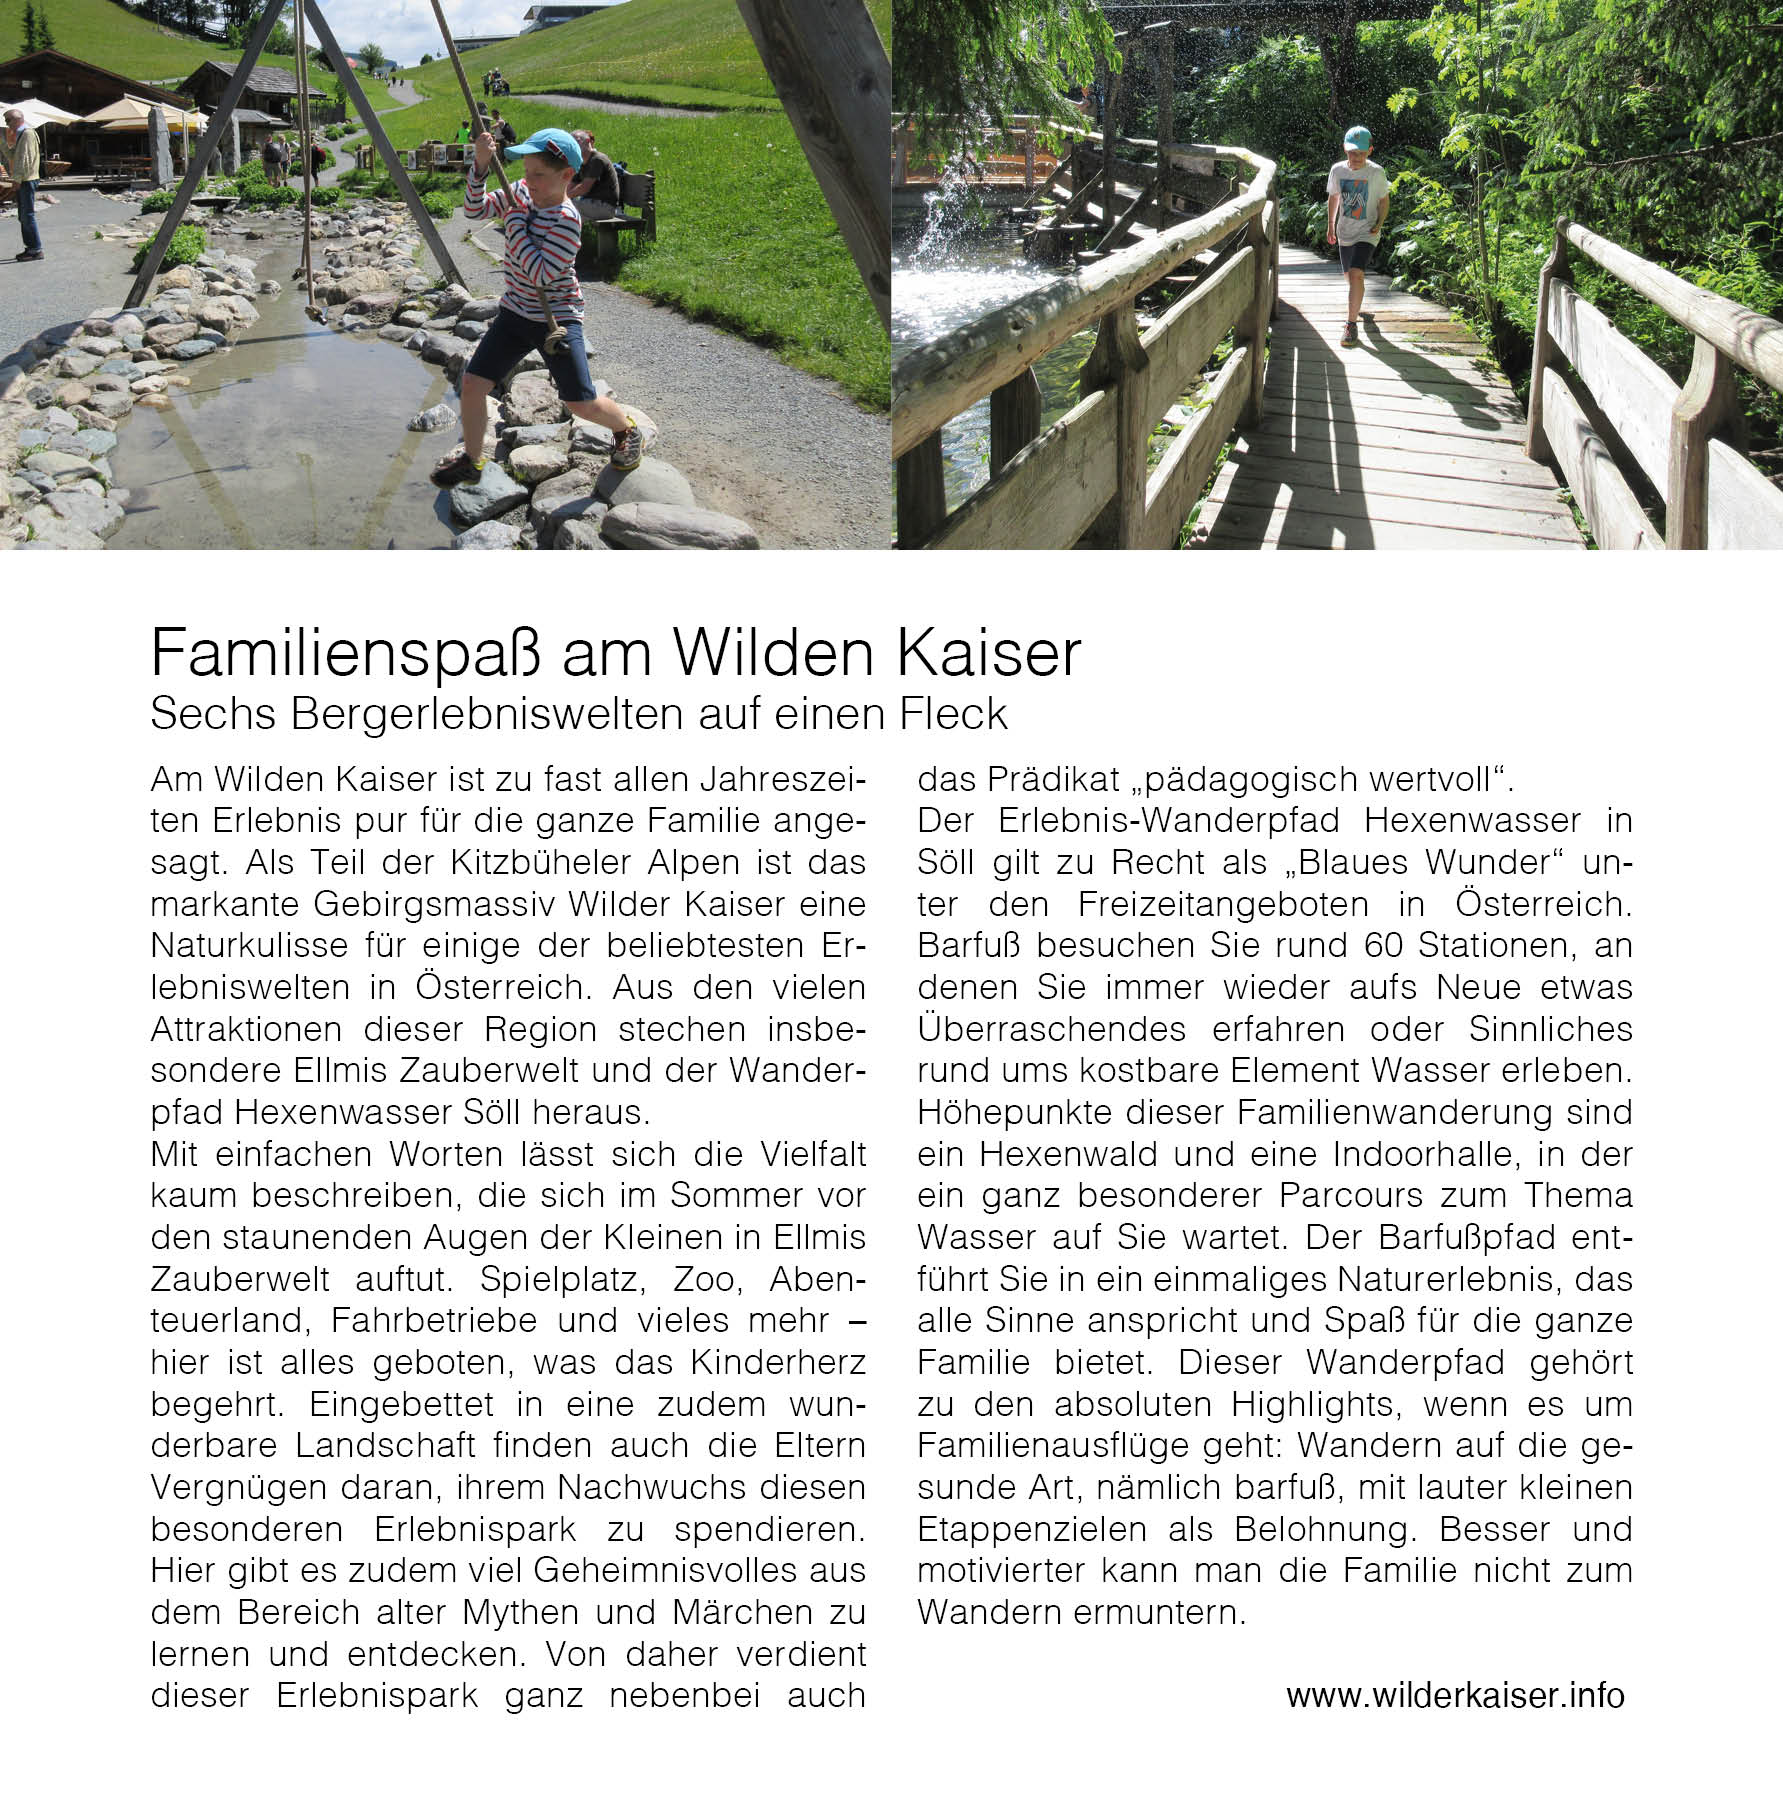 http://www.berge-exclusiv.de/wp-content/uploads/Pocket-Guide-18041645.jpg